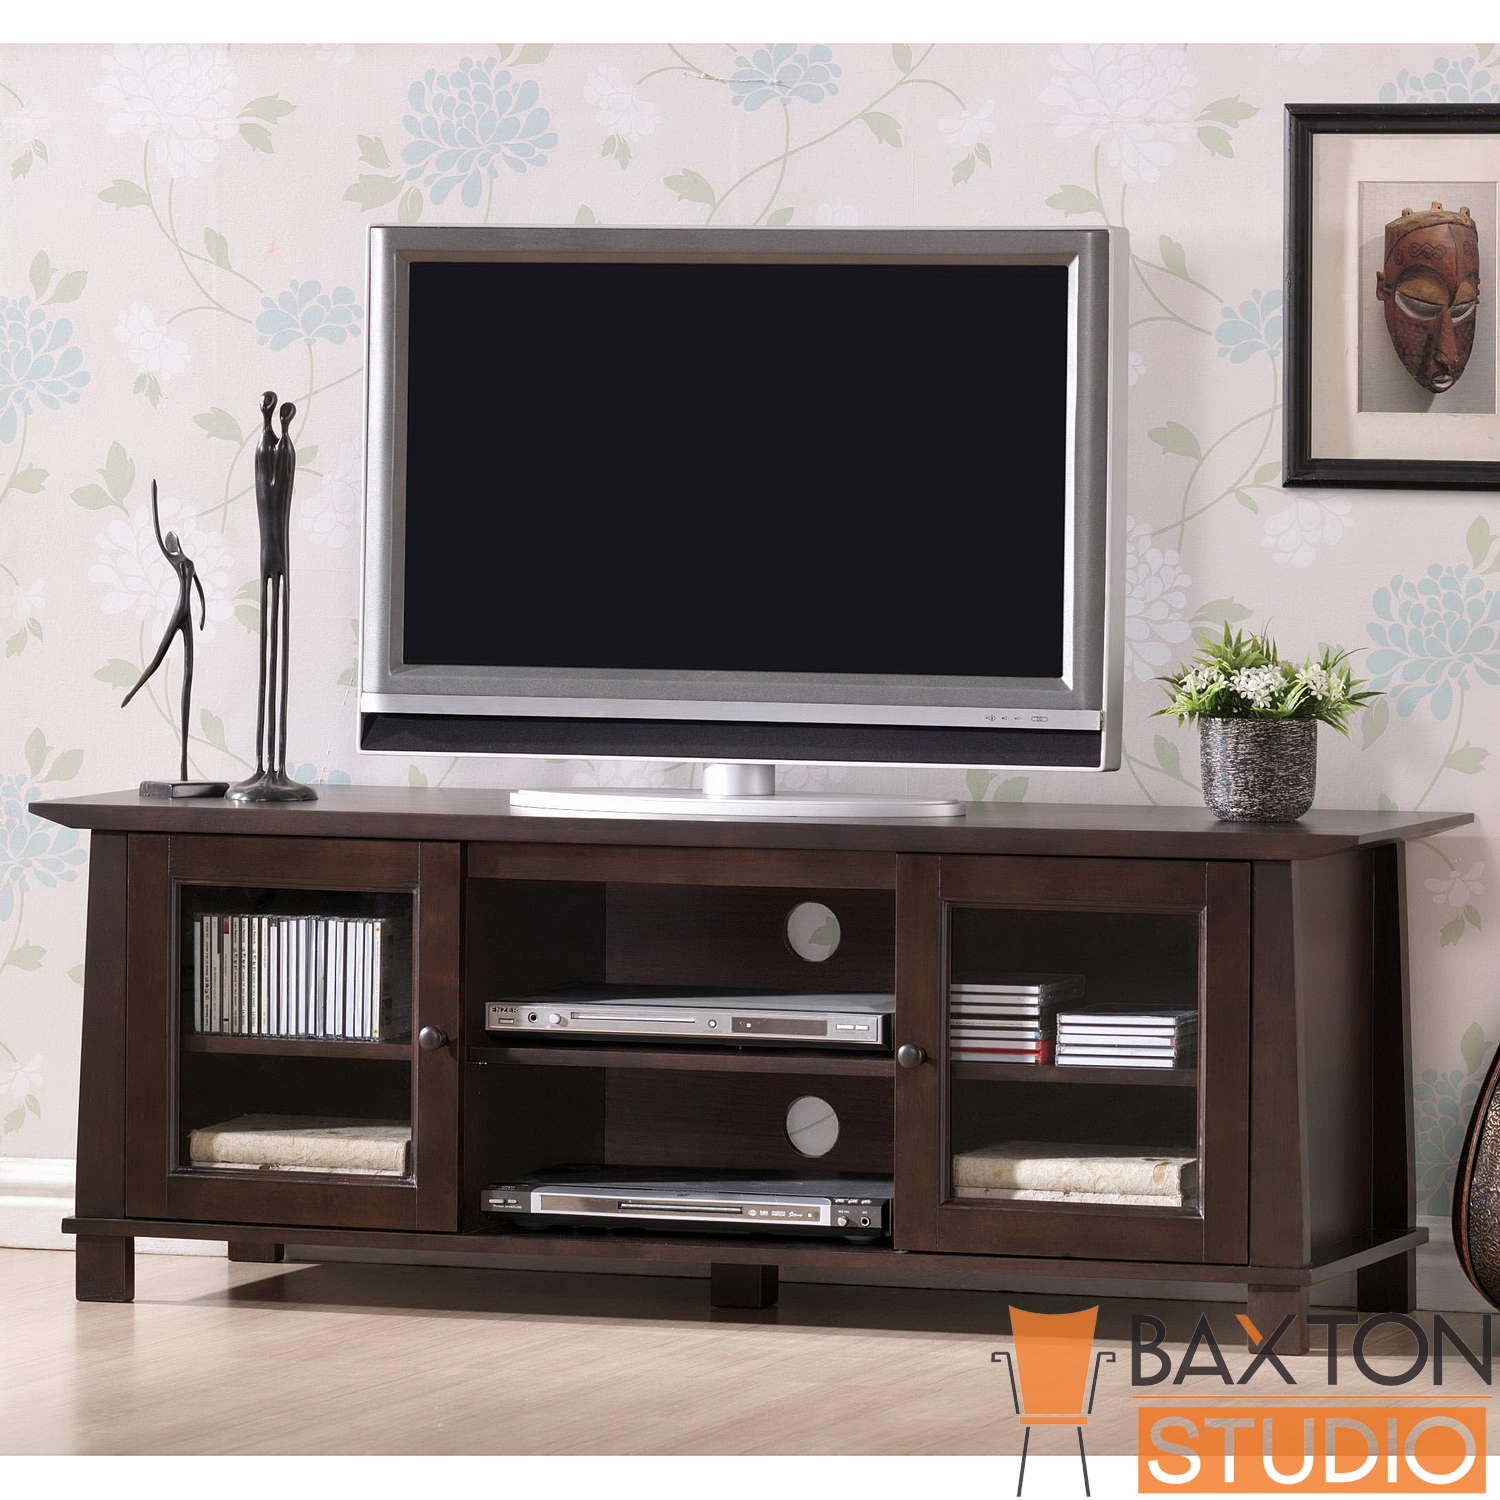 Baxton  Havana Brown Wood Modern TV